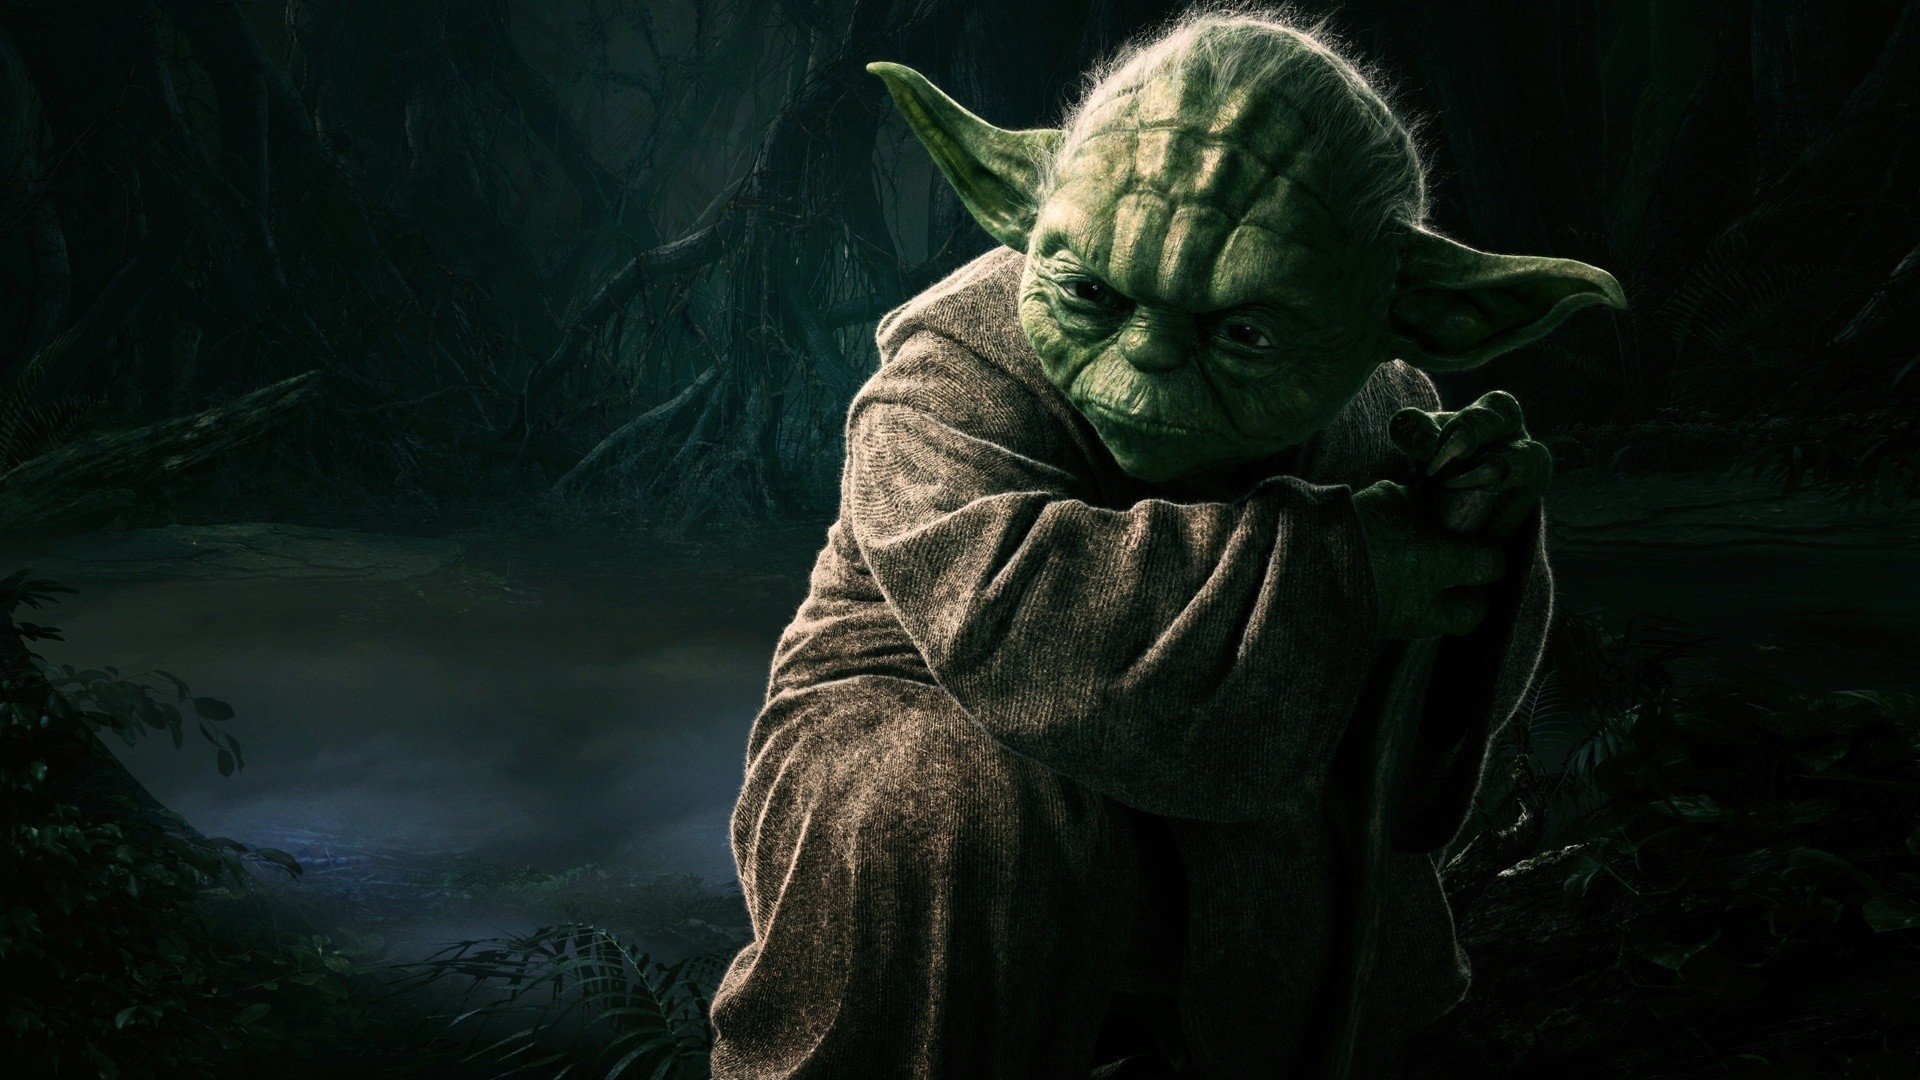 Jedi Wallpapers 1920x1080 Full Hd 1080p Desktop Backgrounds